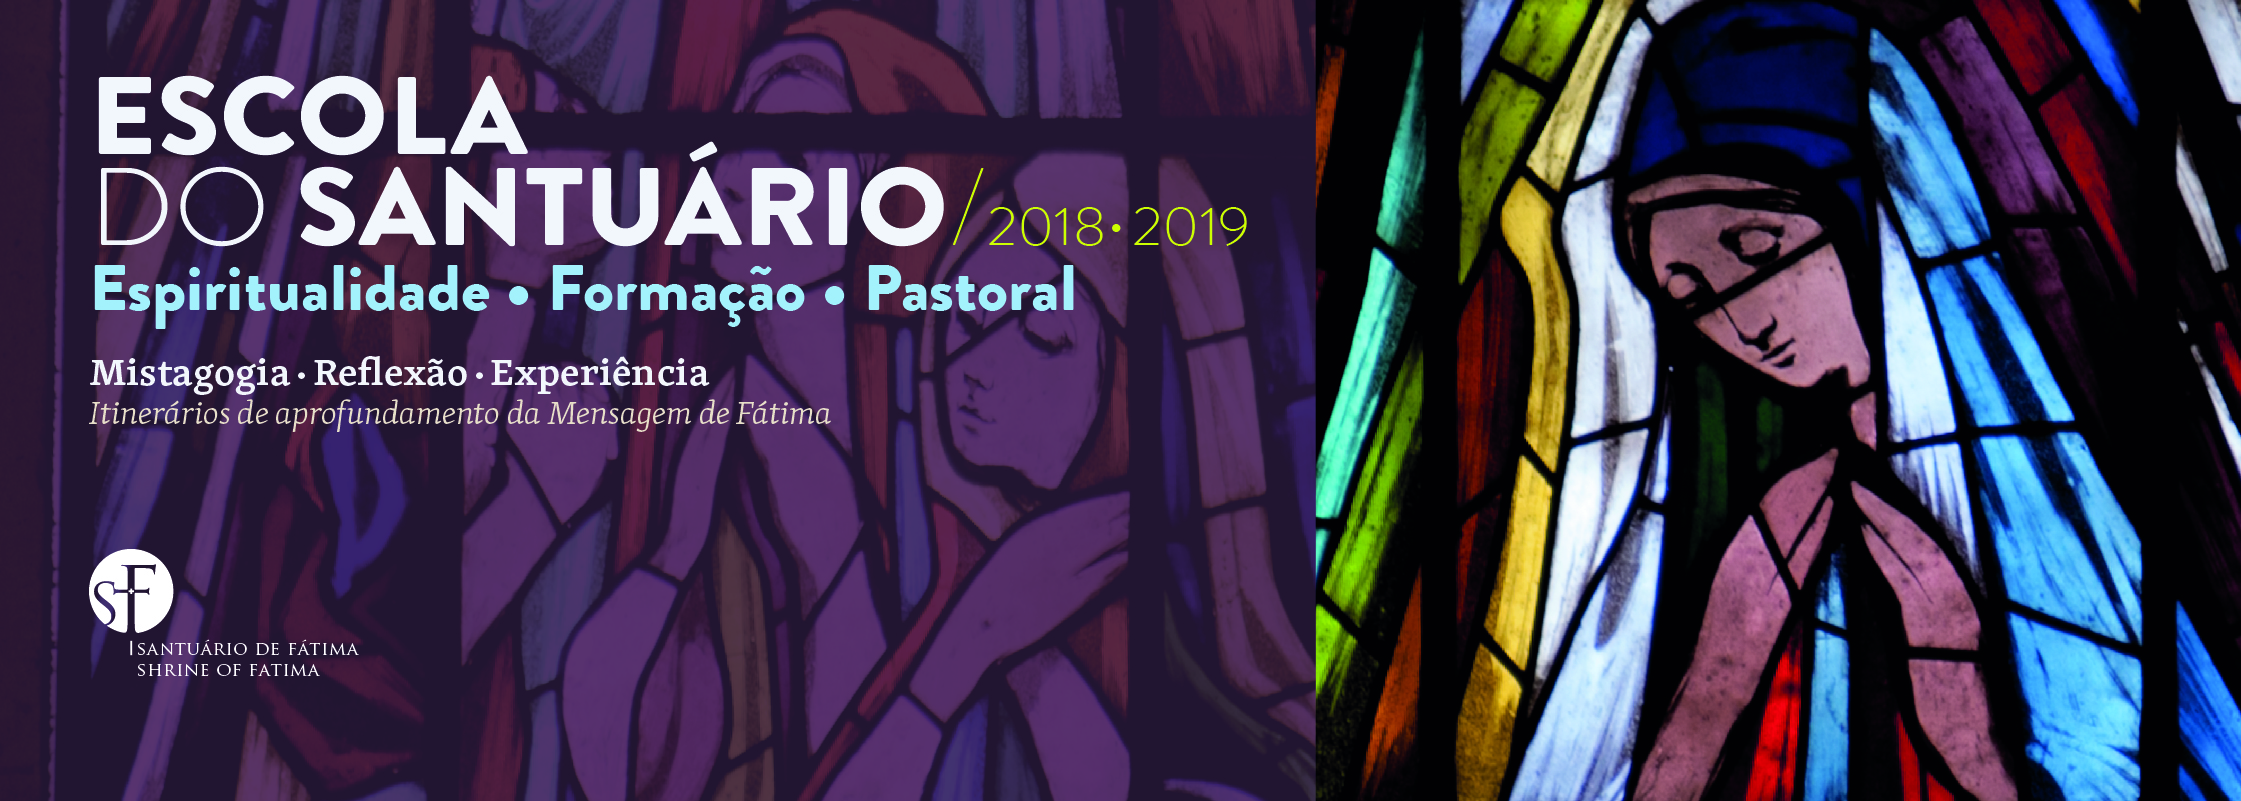 AF_ BANNER Cartaz Escola do Santuario 18_19@2x-100.jpg